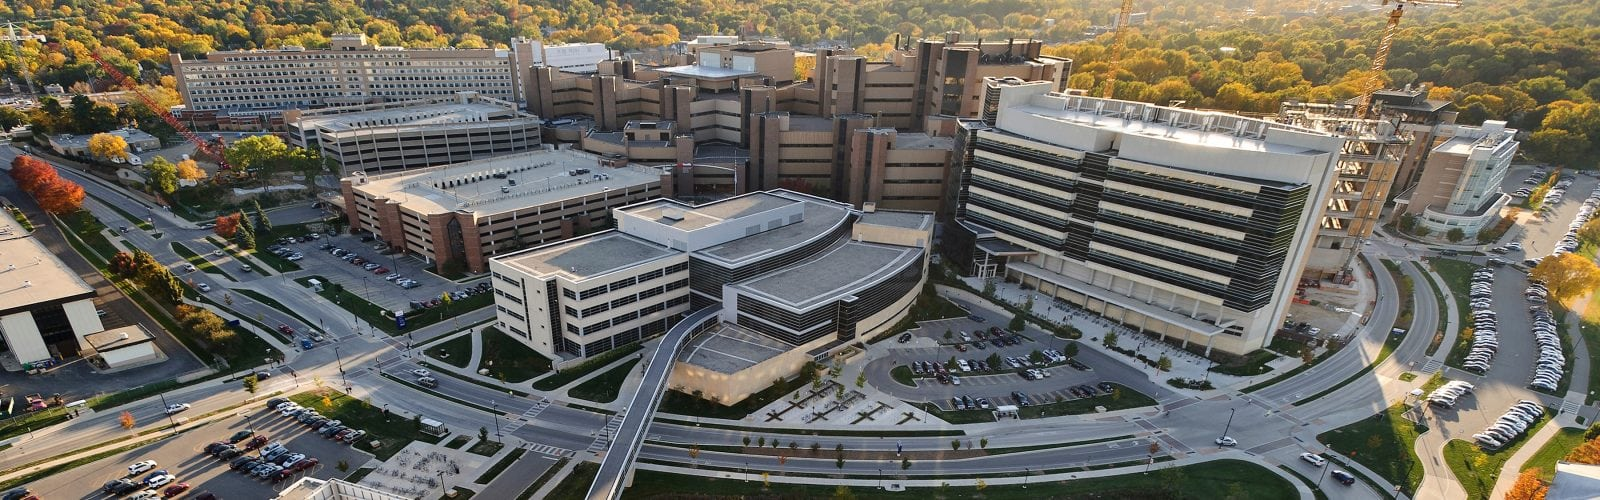 aerial view of UW Hospital